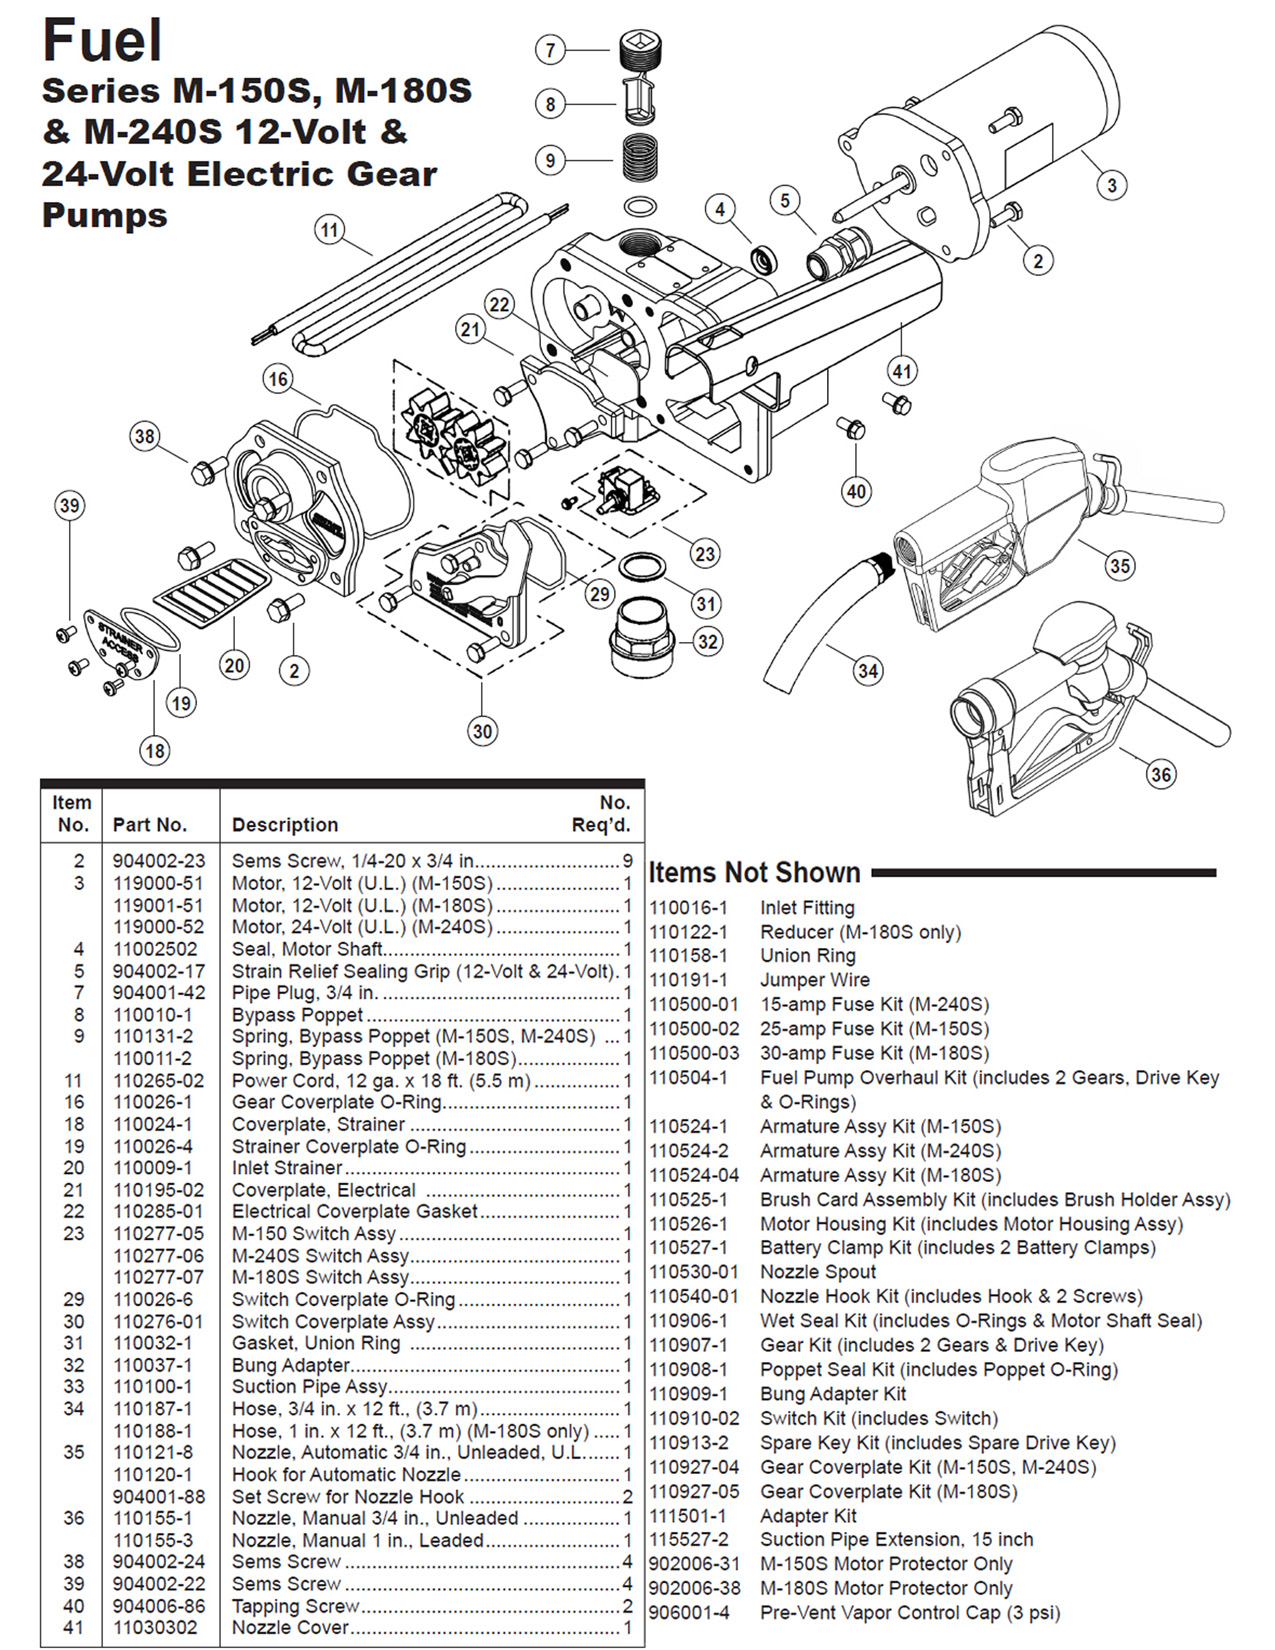 gpi fuel pump wiring diagram Collection-Gpi 12v Economy Model Fuel Pump Parts List Diagram Tuthill Transfer Wiring Diagram Full 3-p